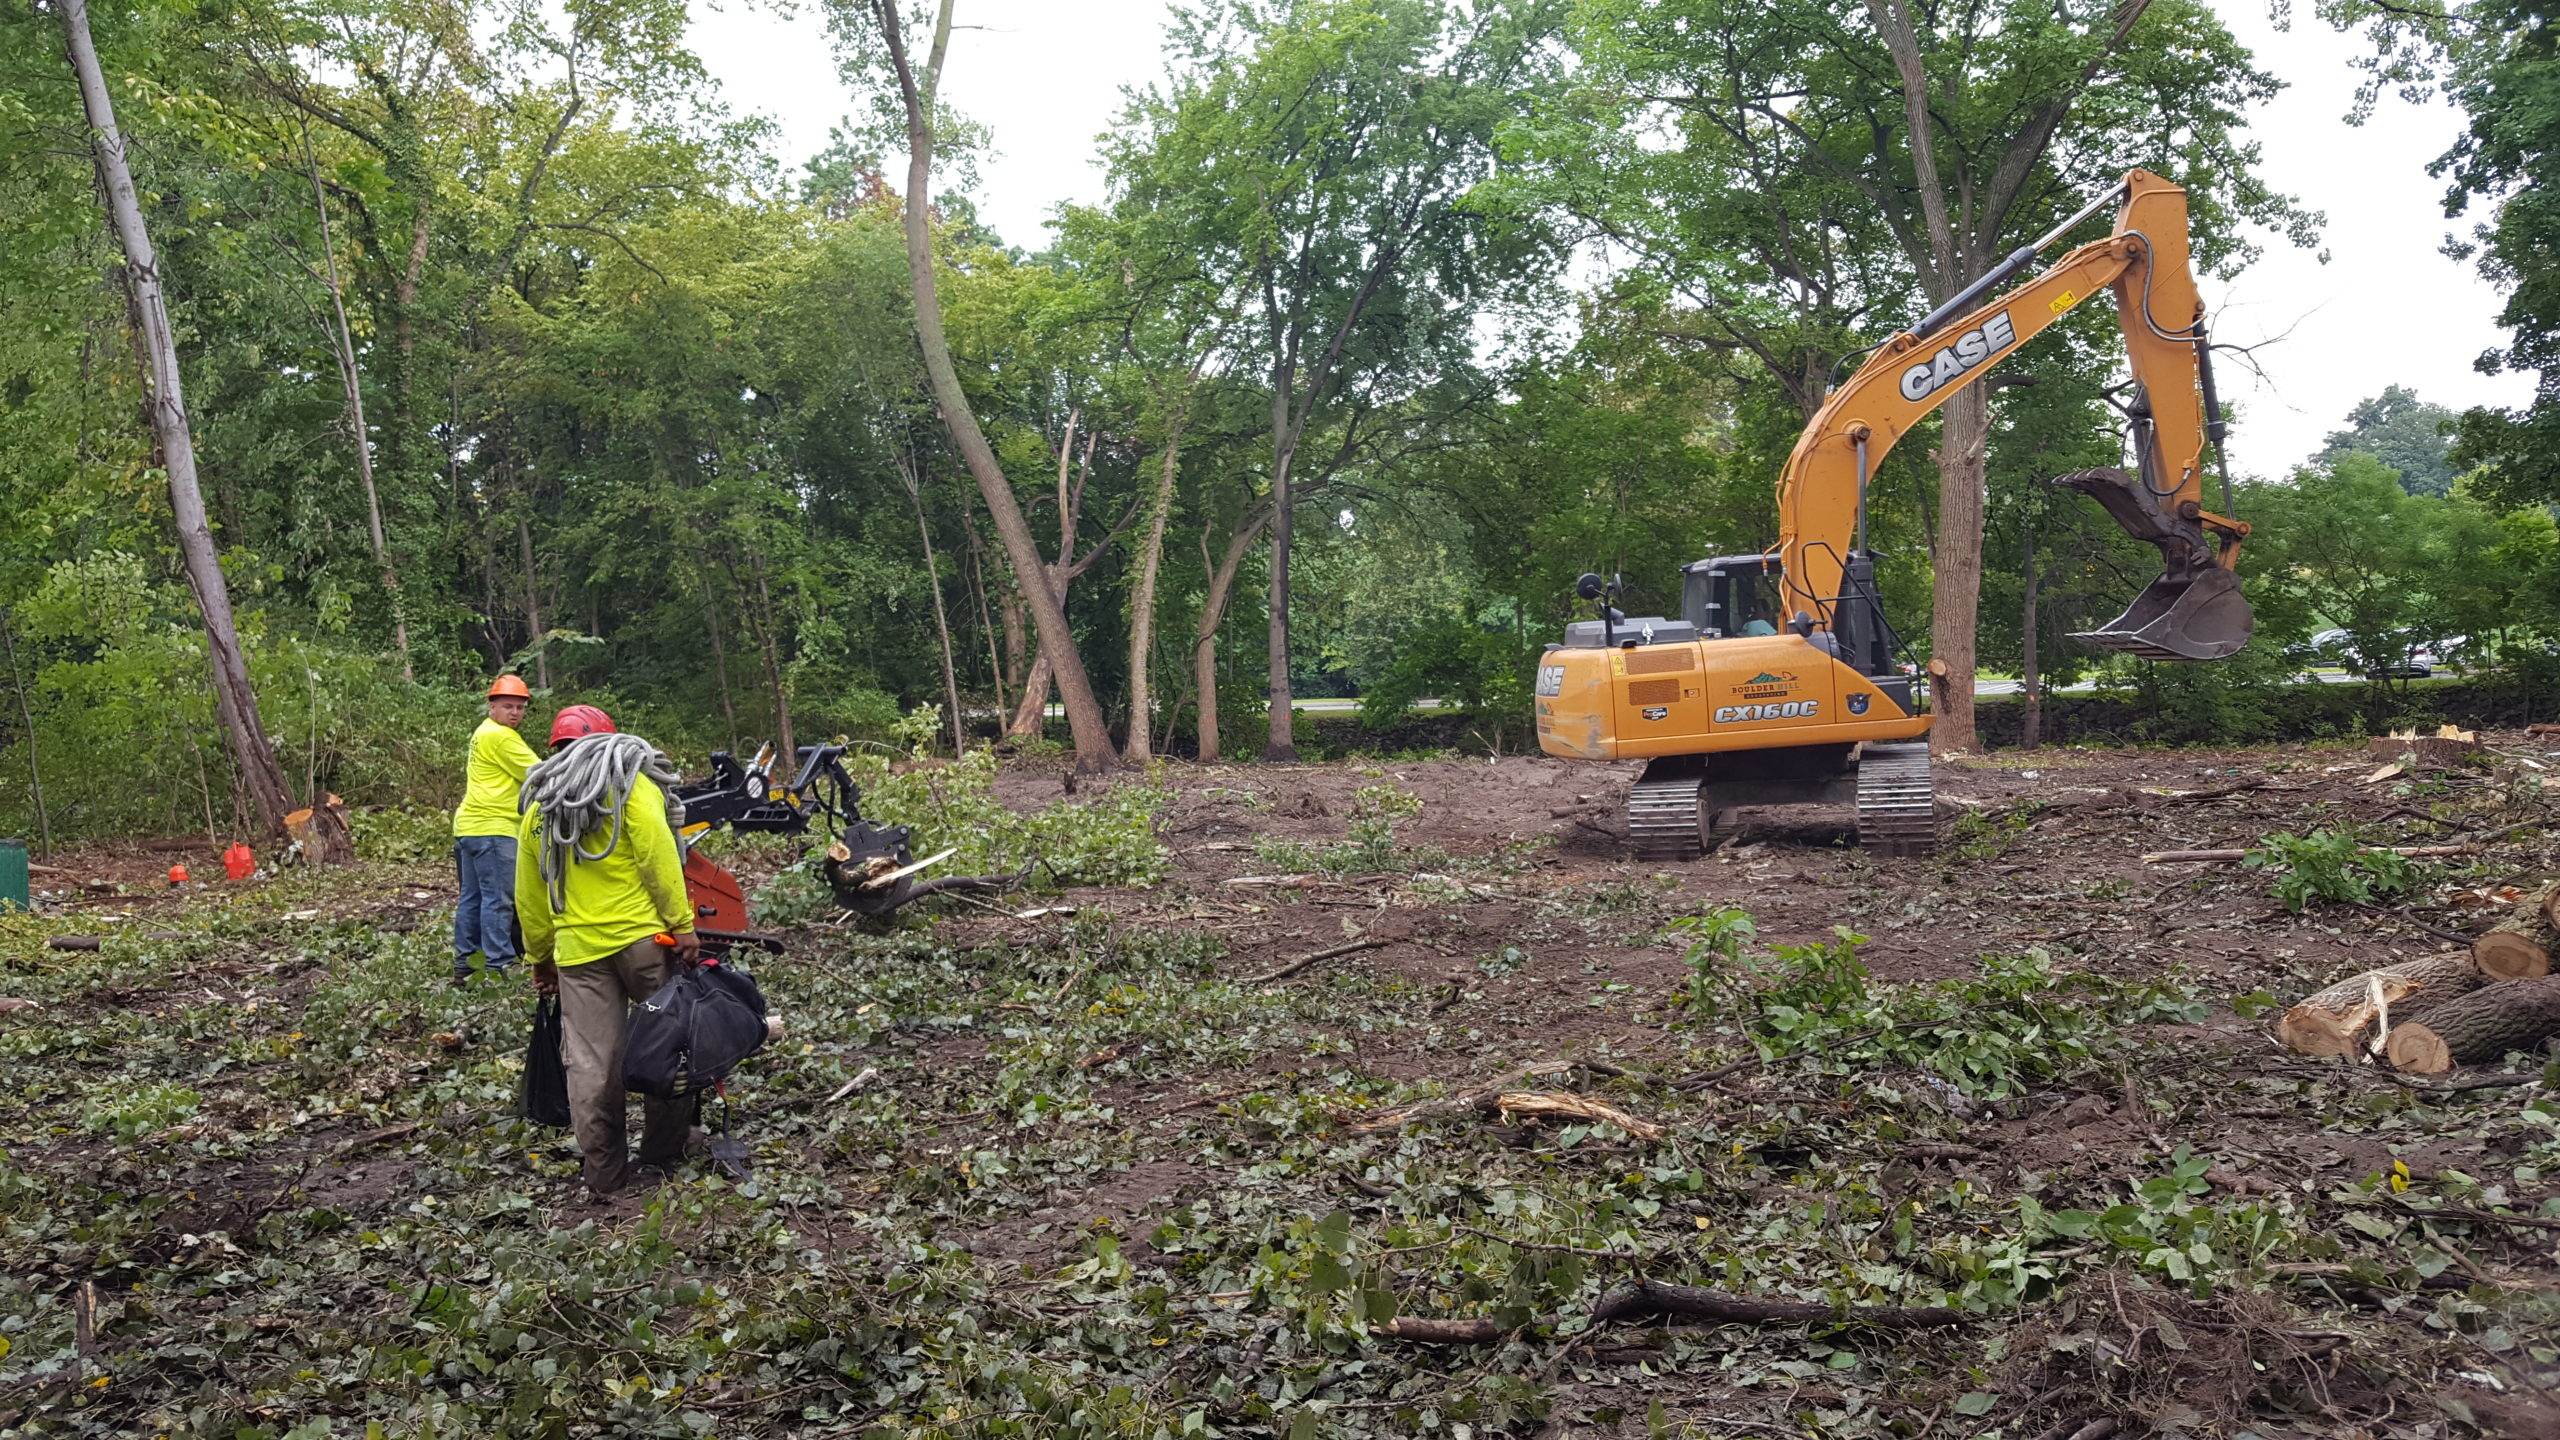 Commercial Land Clearing - NJ Tree Removal Services